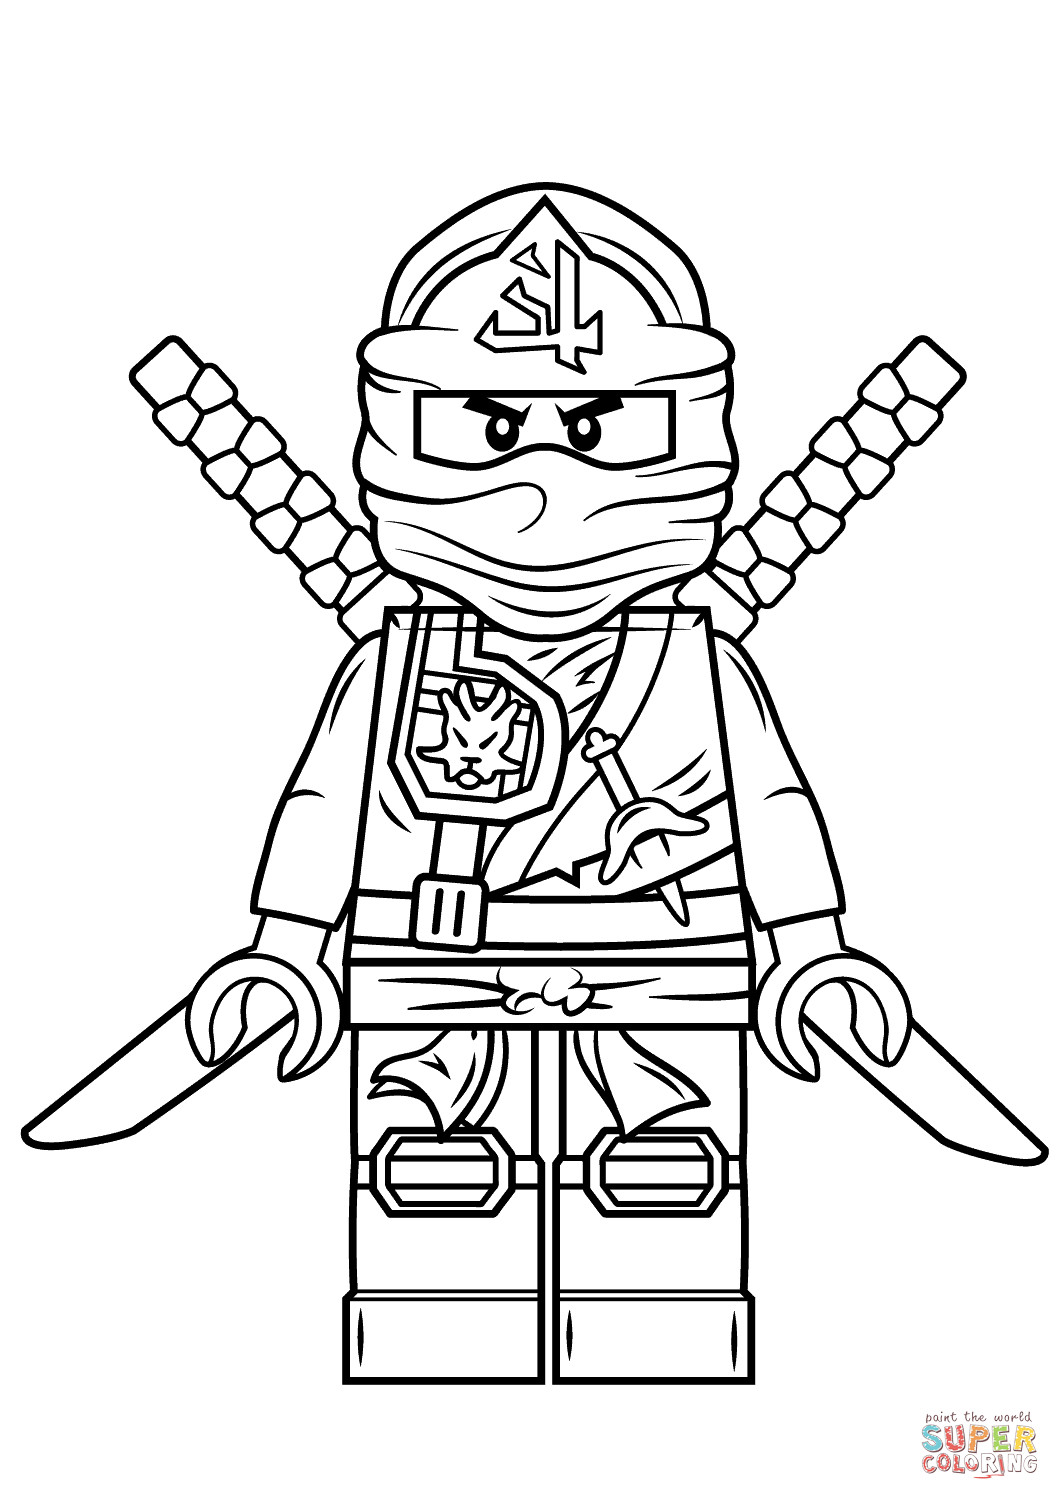 Best ideas about Ninjago Coloring Pages For Kids . Save or Pin Lego Ninjago Green Ninja Super Coloring Now.